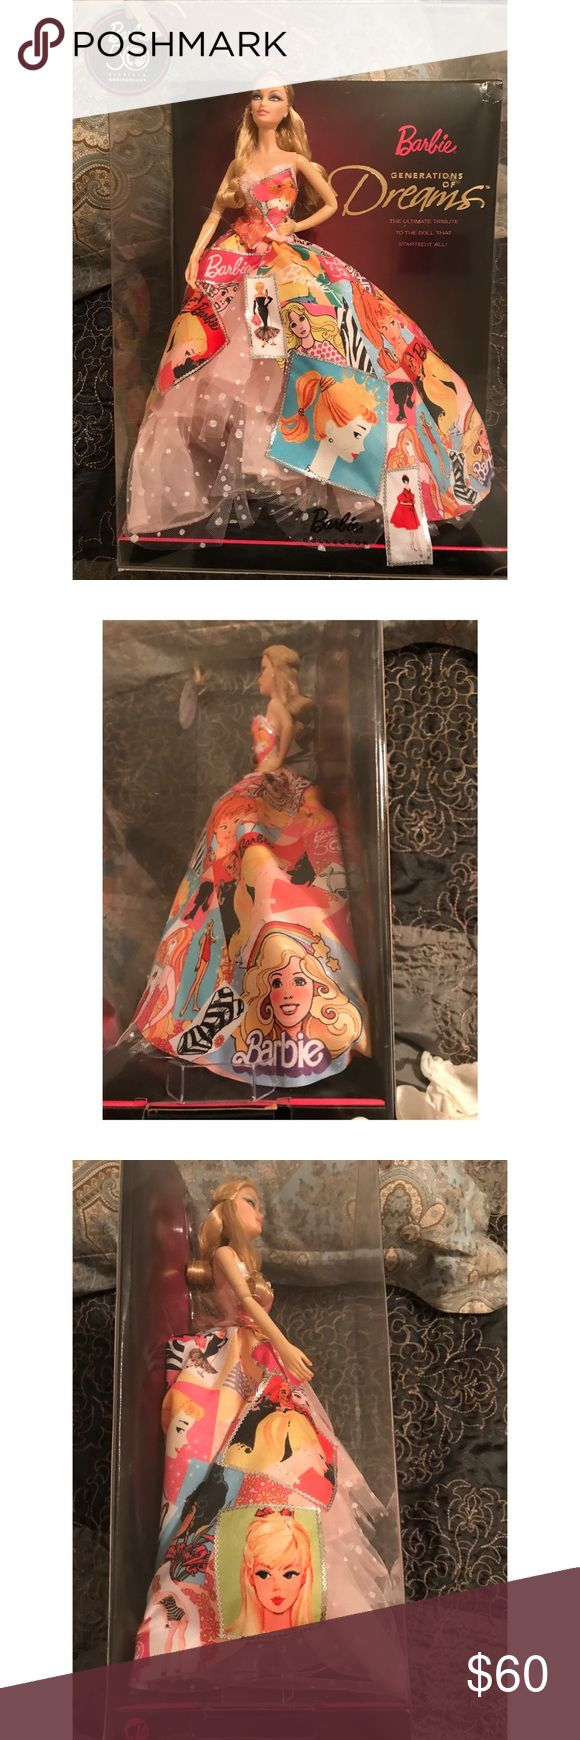 Barbie generation of dreams, New in box Celebrating 50th anniversary, never been opened. Collectors' item. Barbie Other